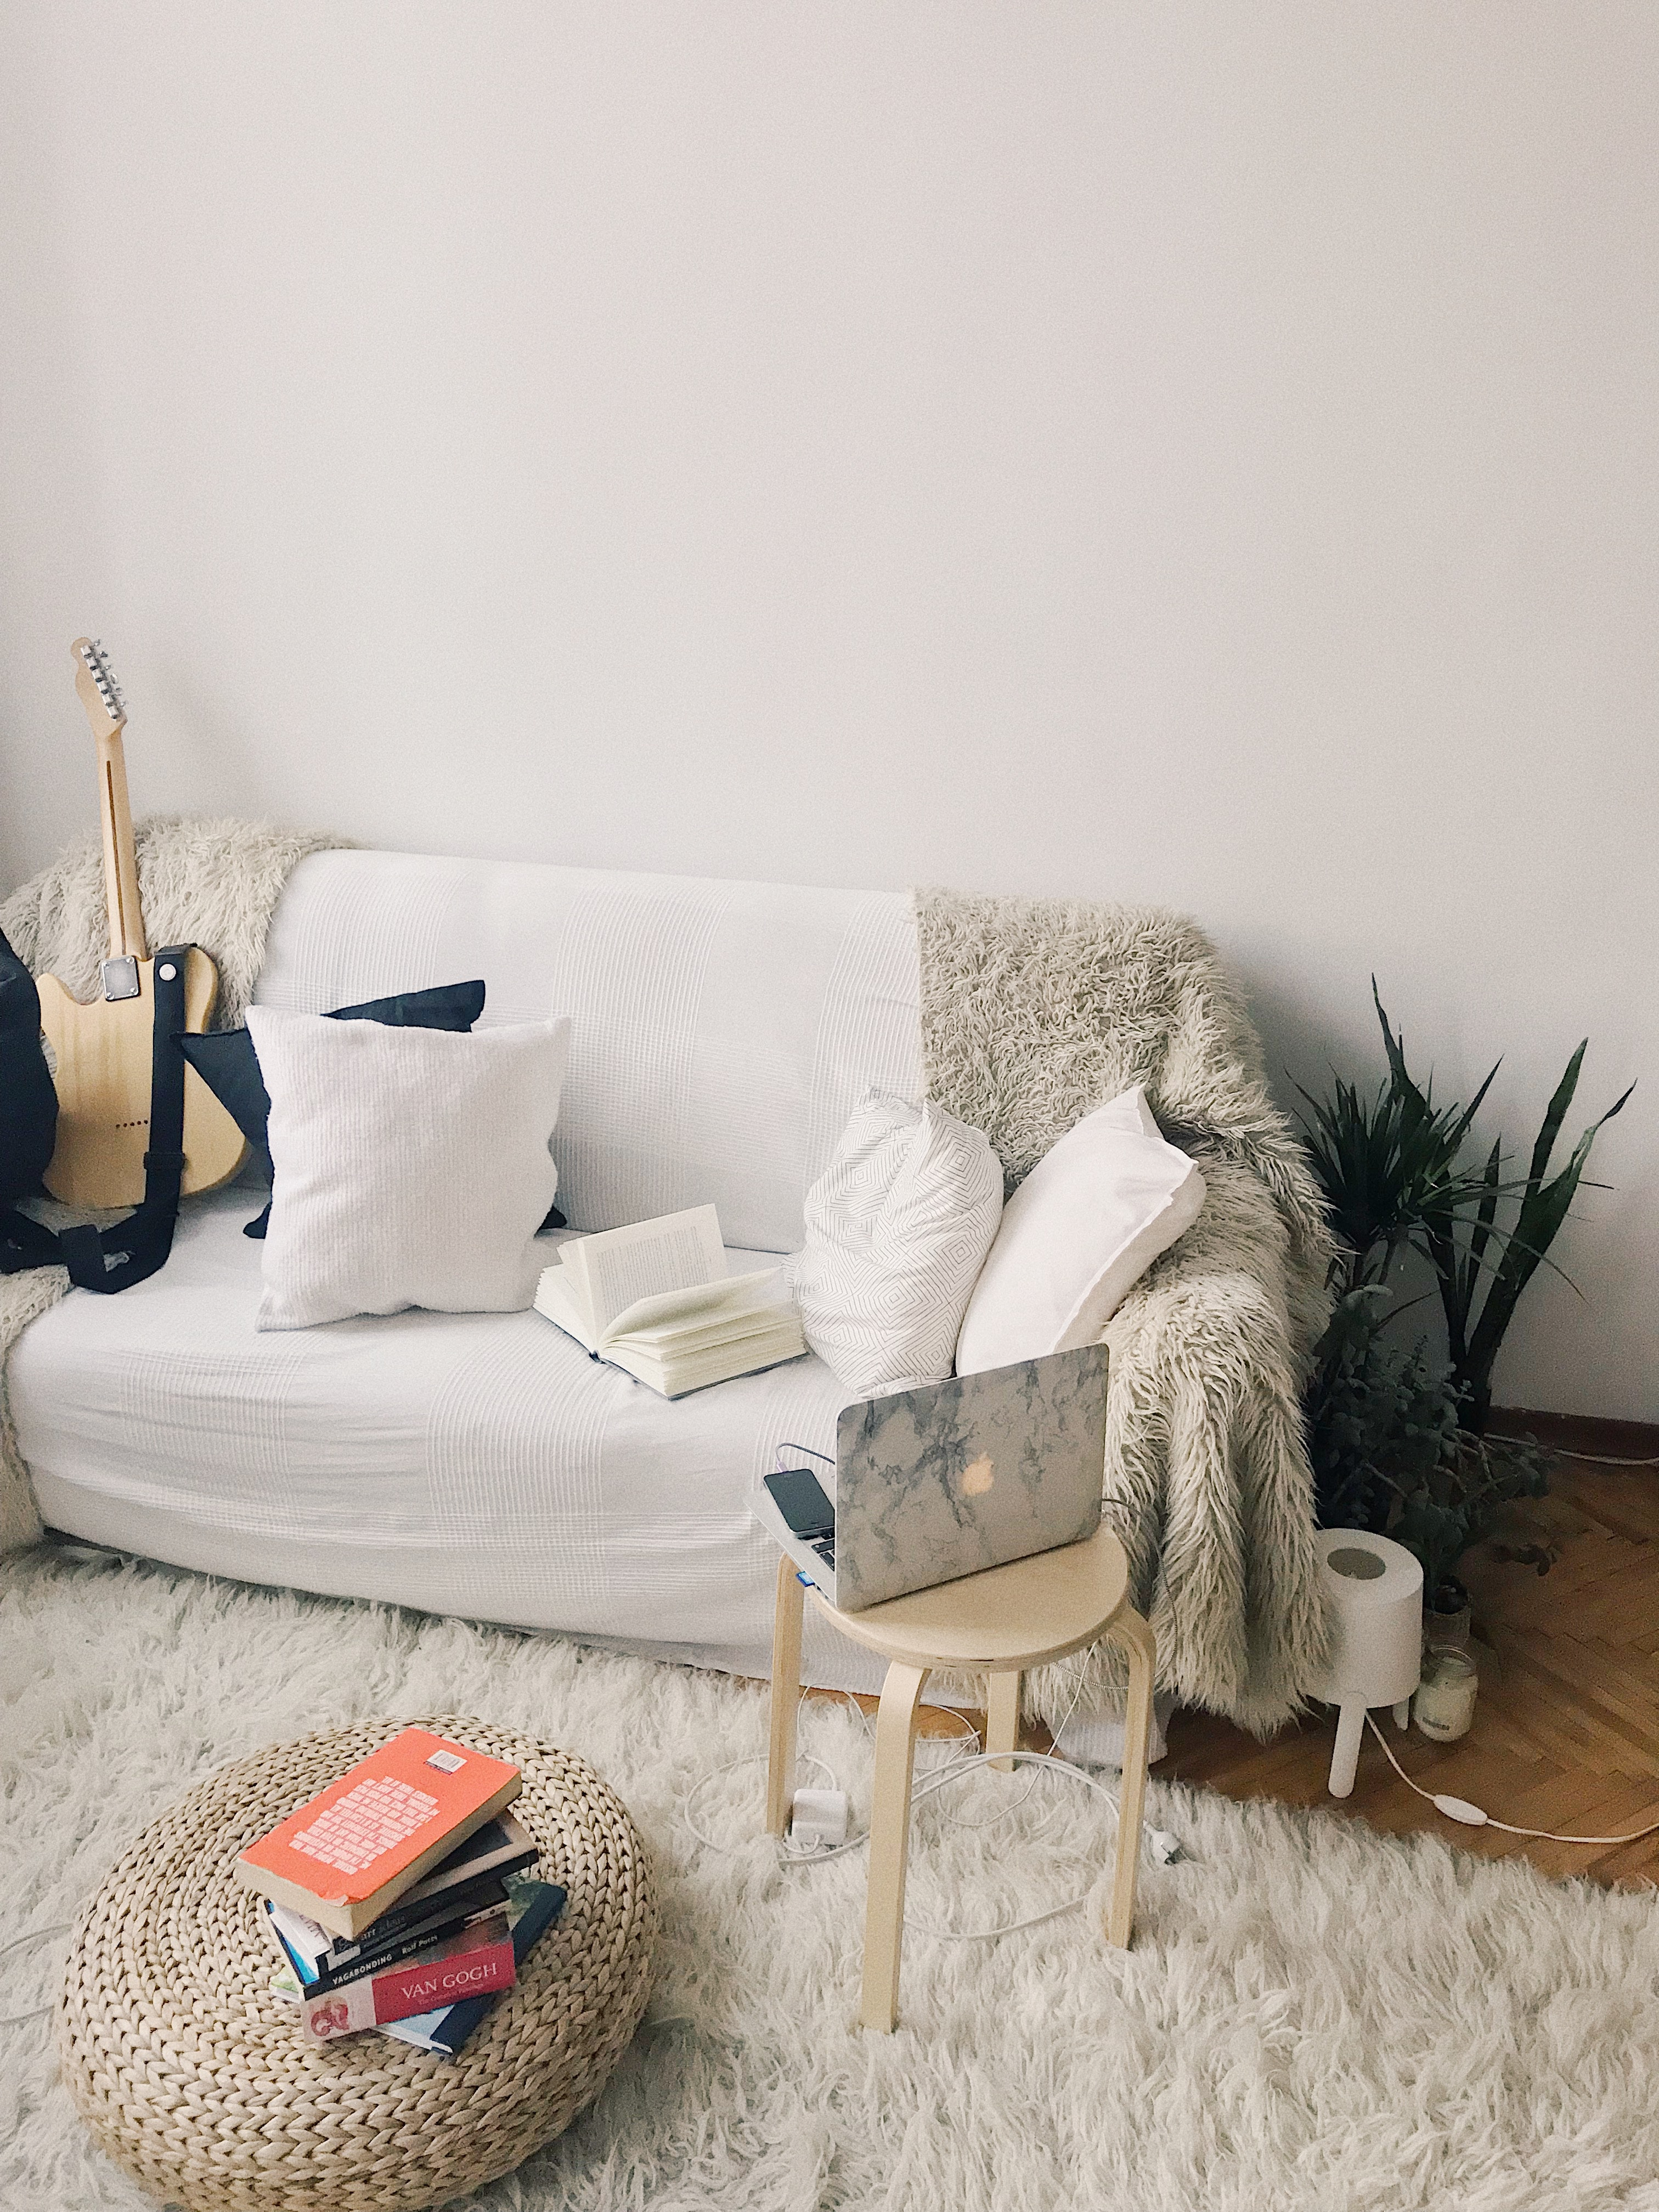 apartment decor with tan accents